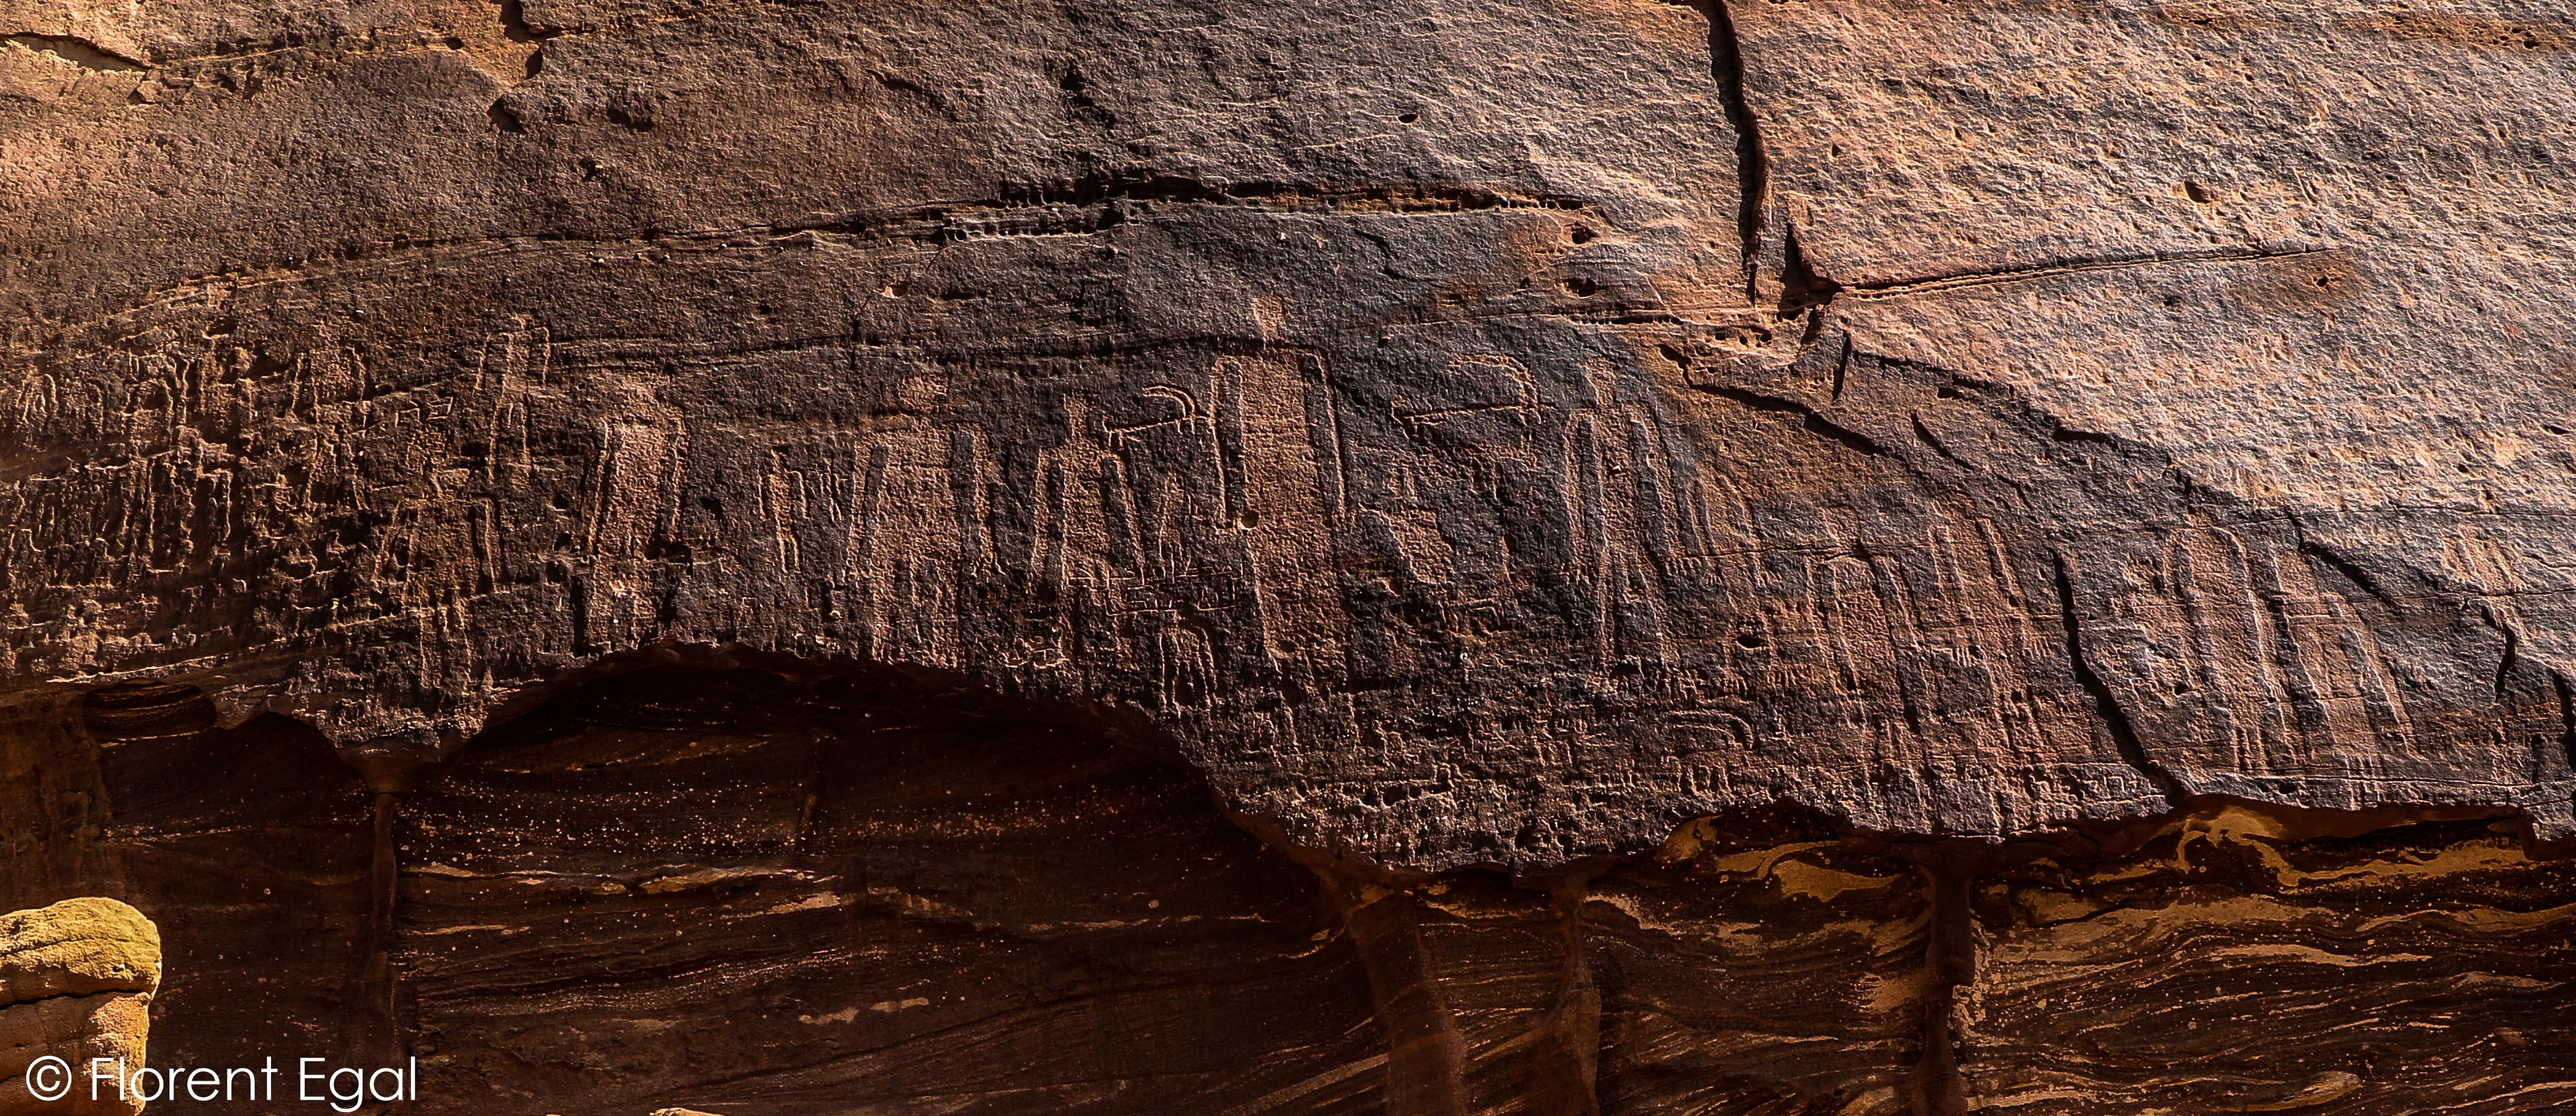 Prehistoric carvings of human figures in Al-Ula oasis (photo: Florent Egal)